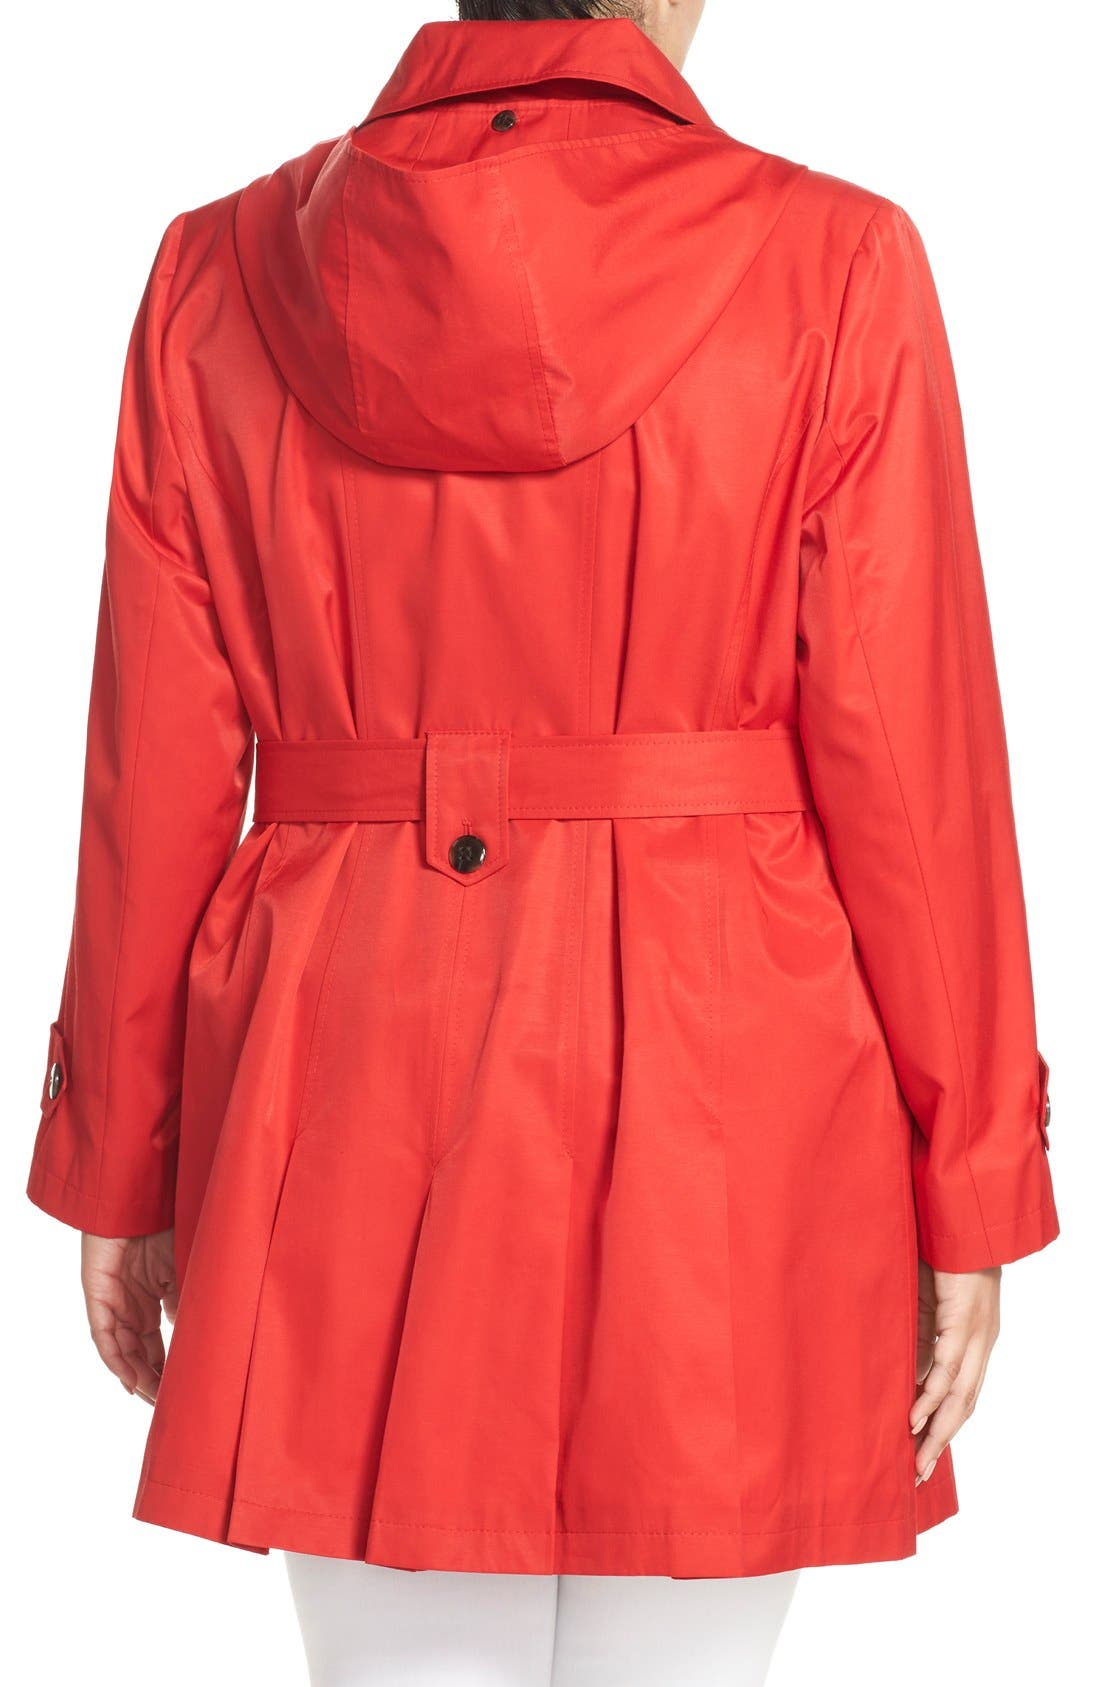 'Scarpa' Single Breasted Trench Coat,                             Alternate thumbnail 17, color,